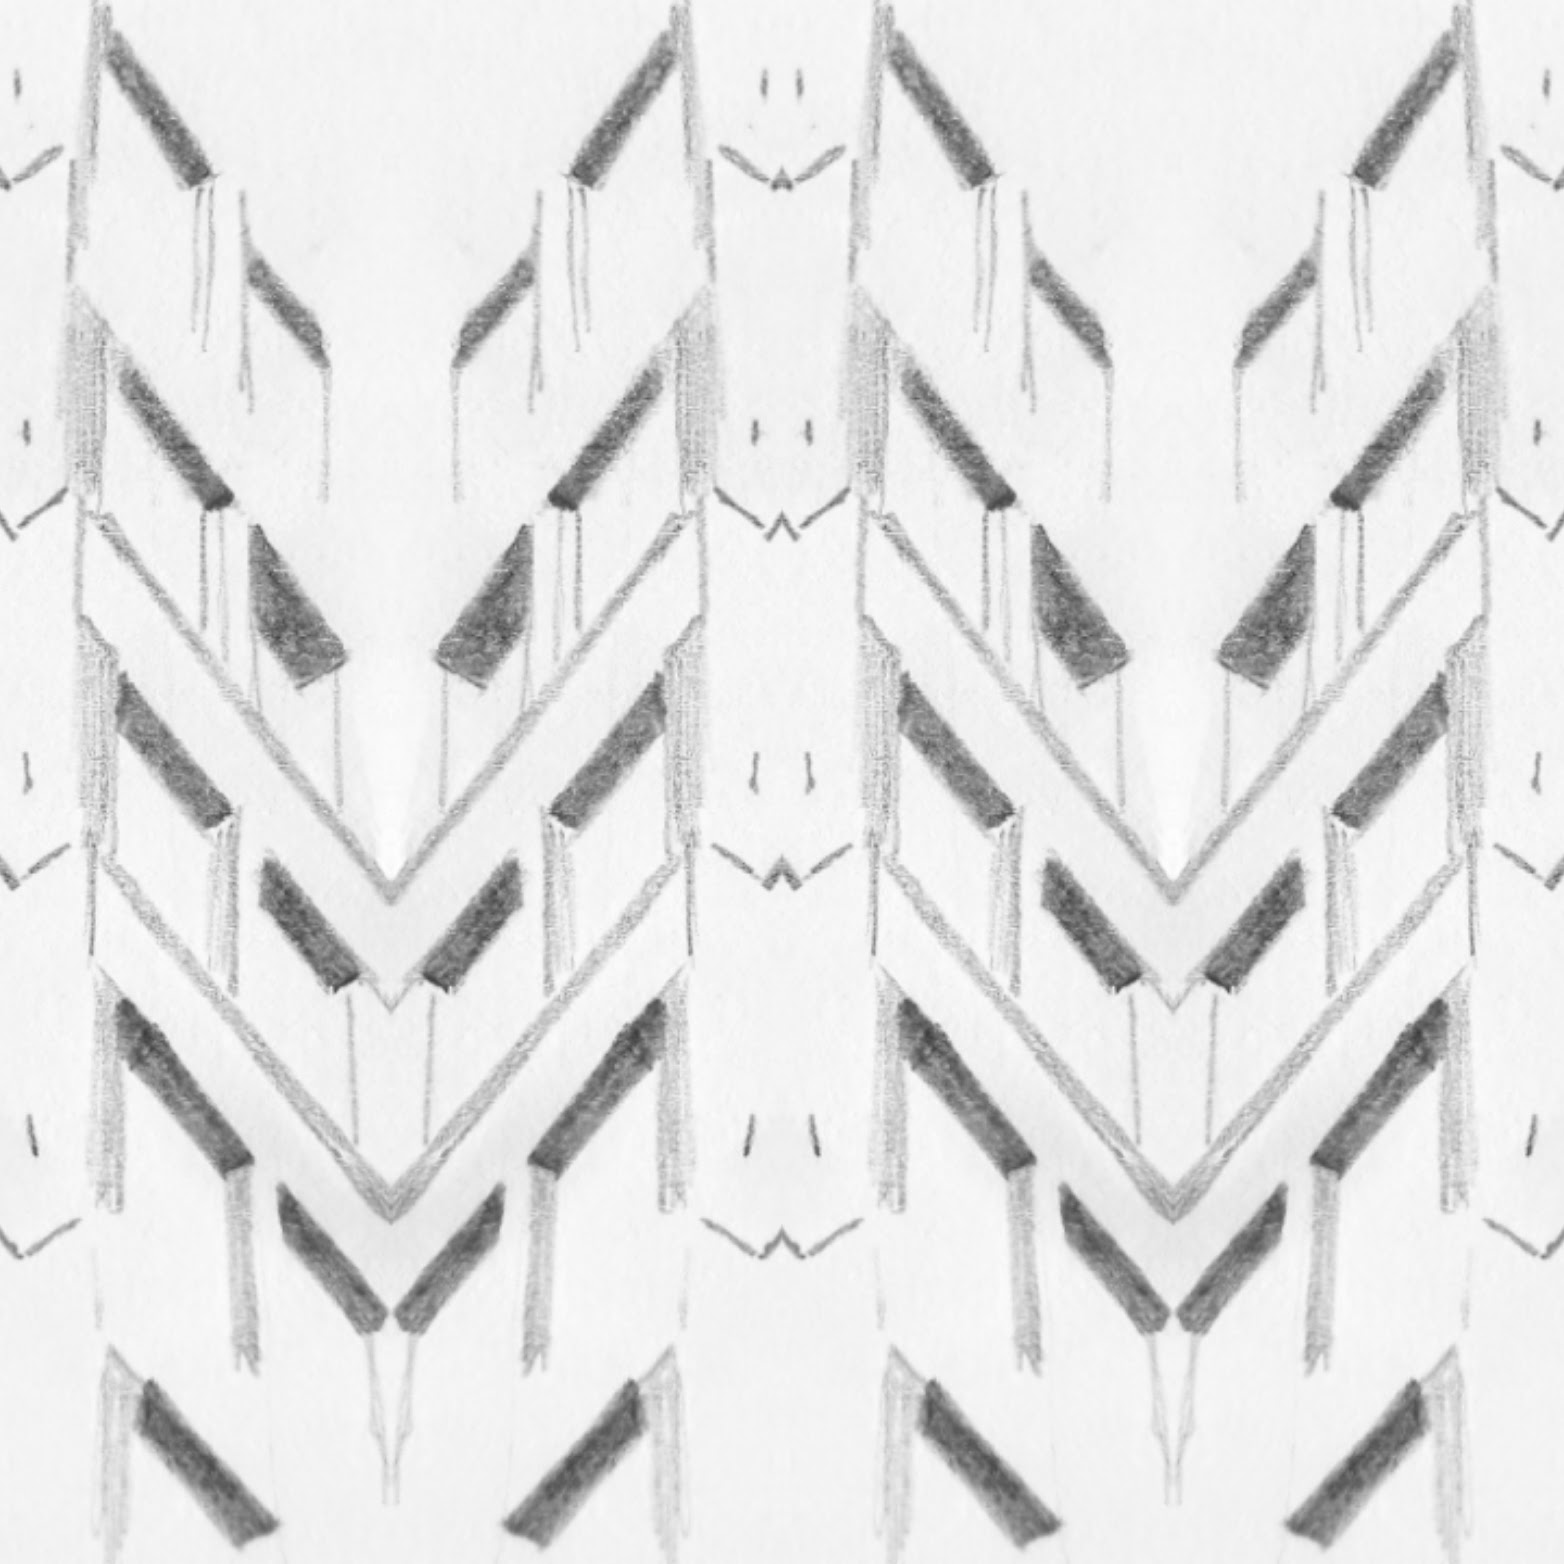 architectural pattern drawing 3 reflection